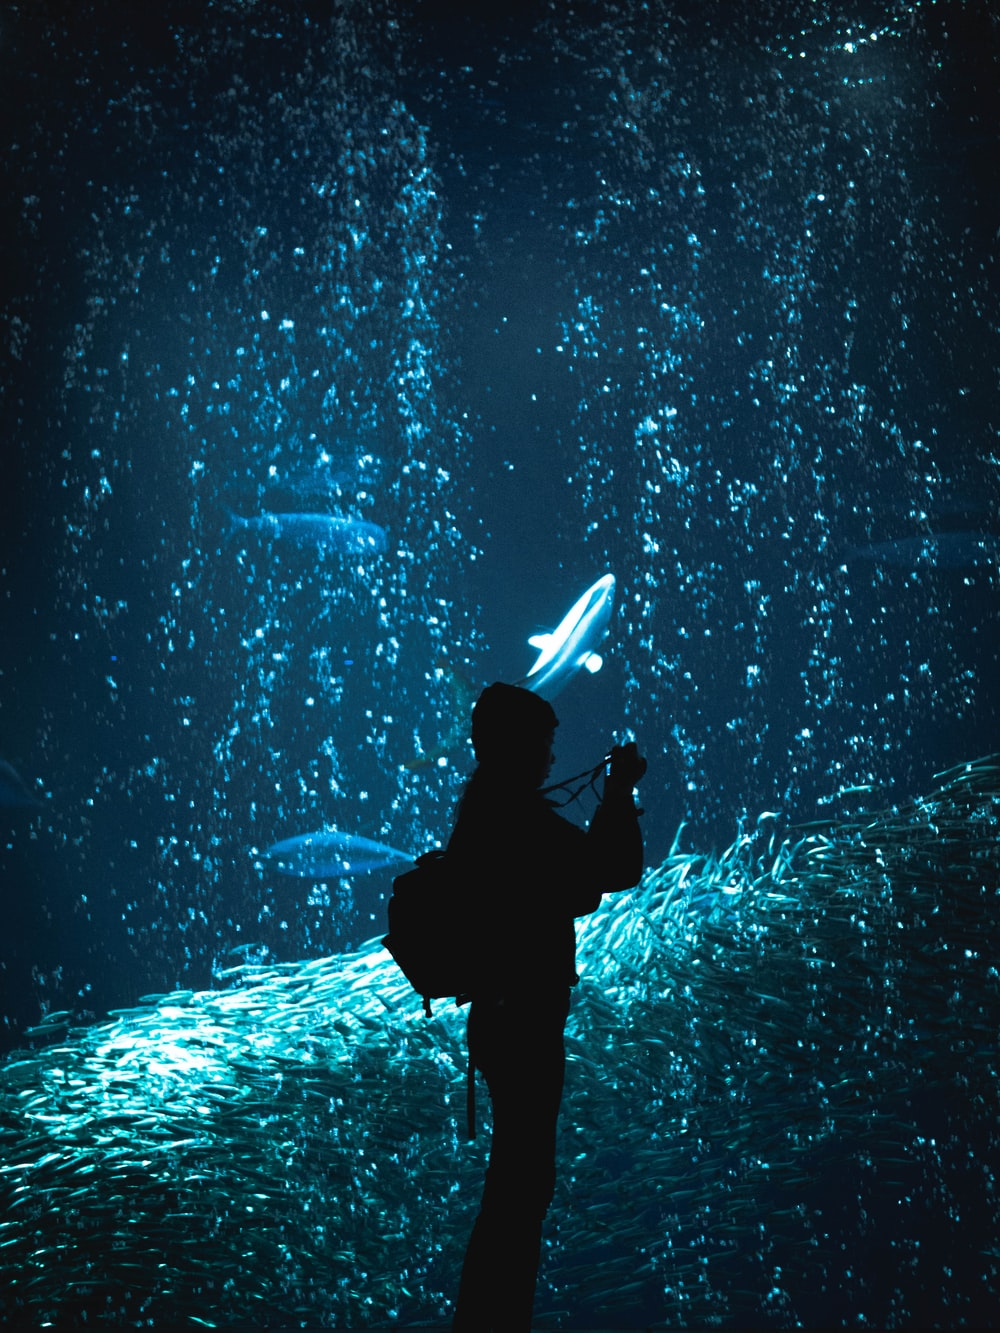 silhouette of person on clear glass fish tank